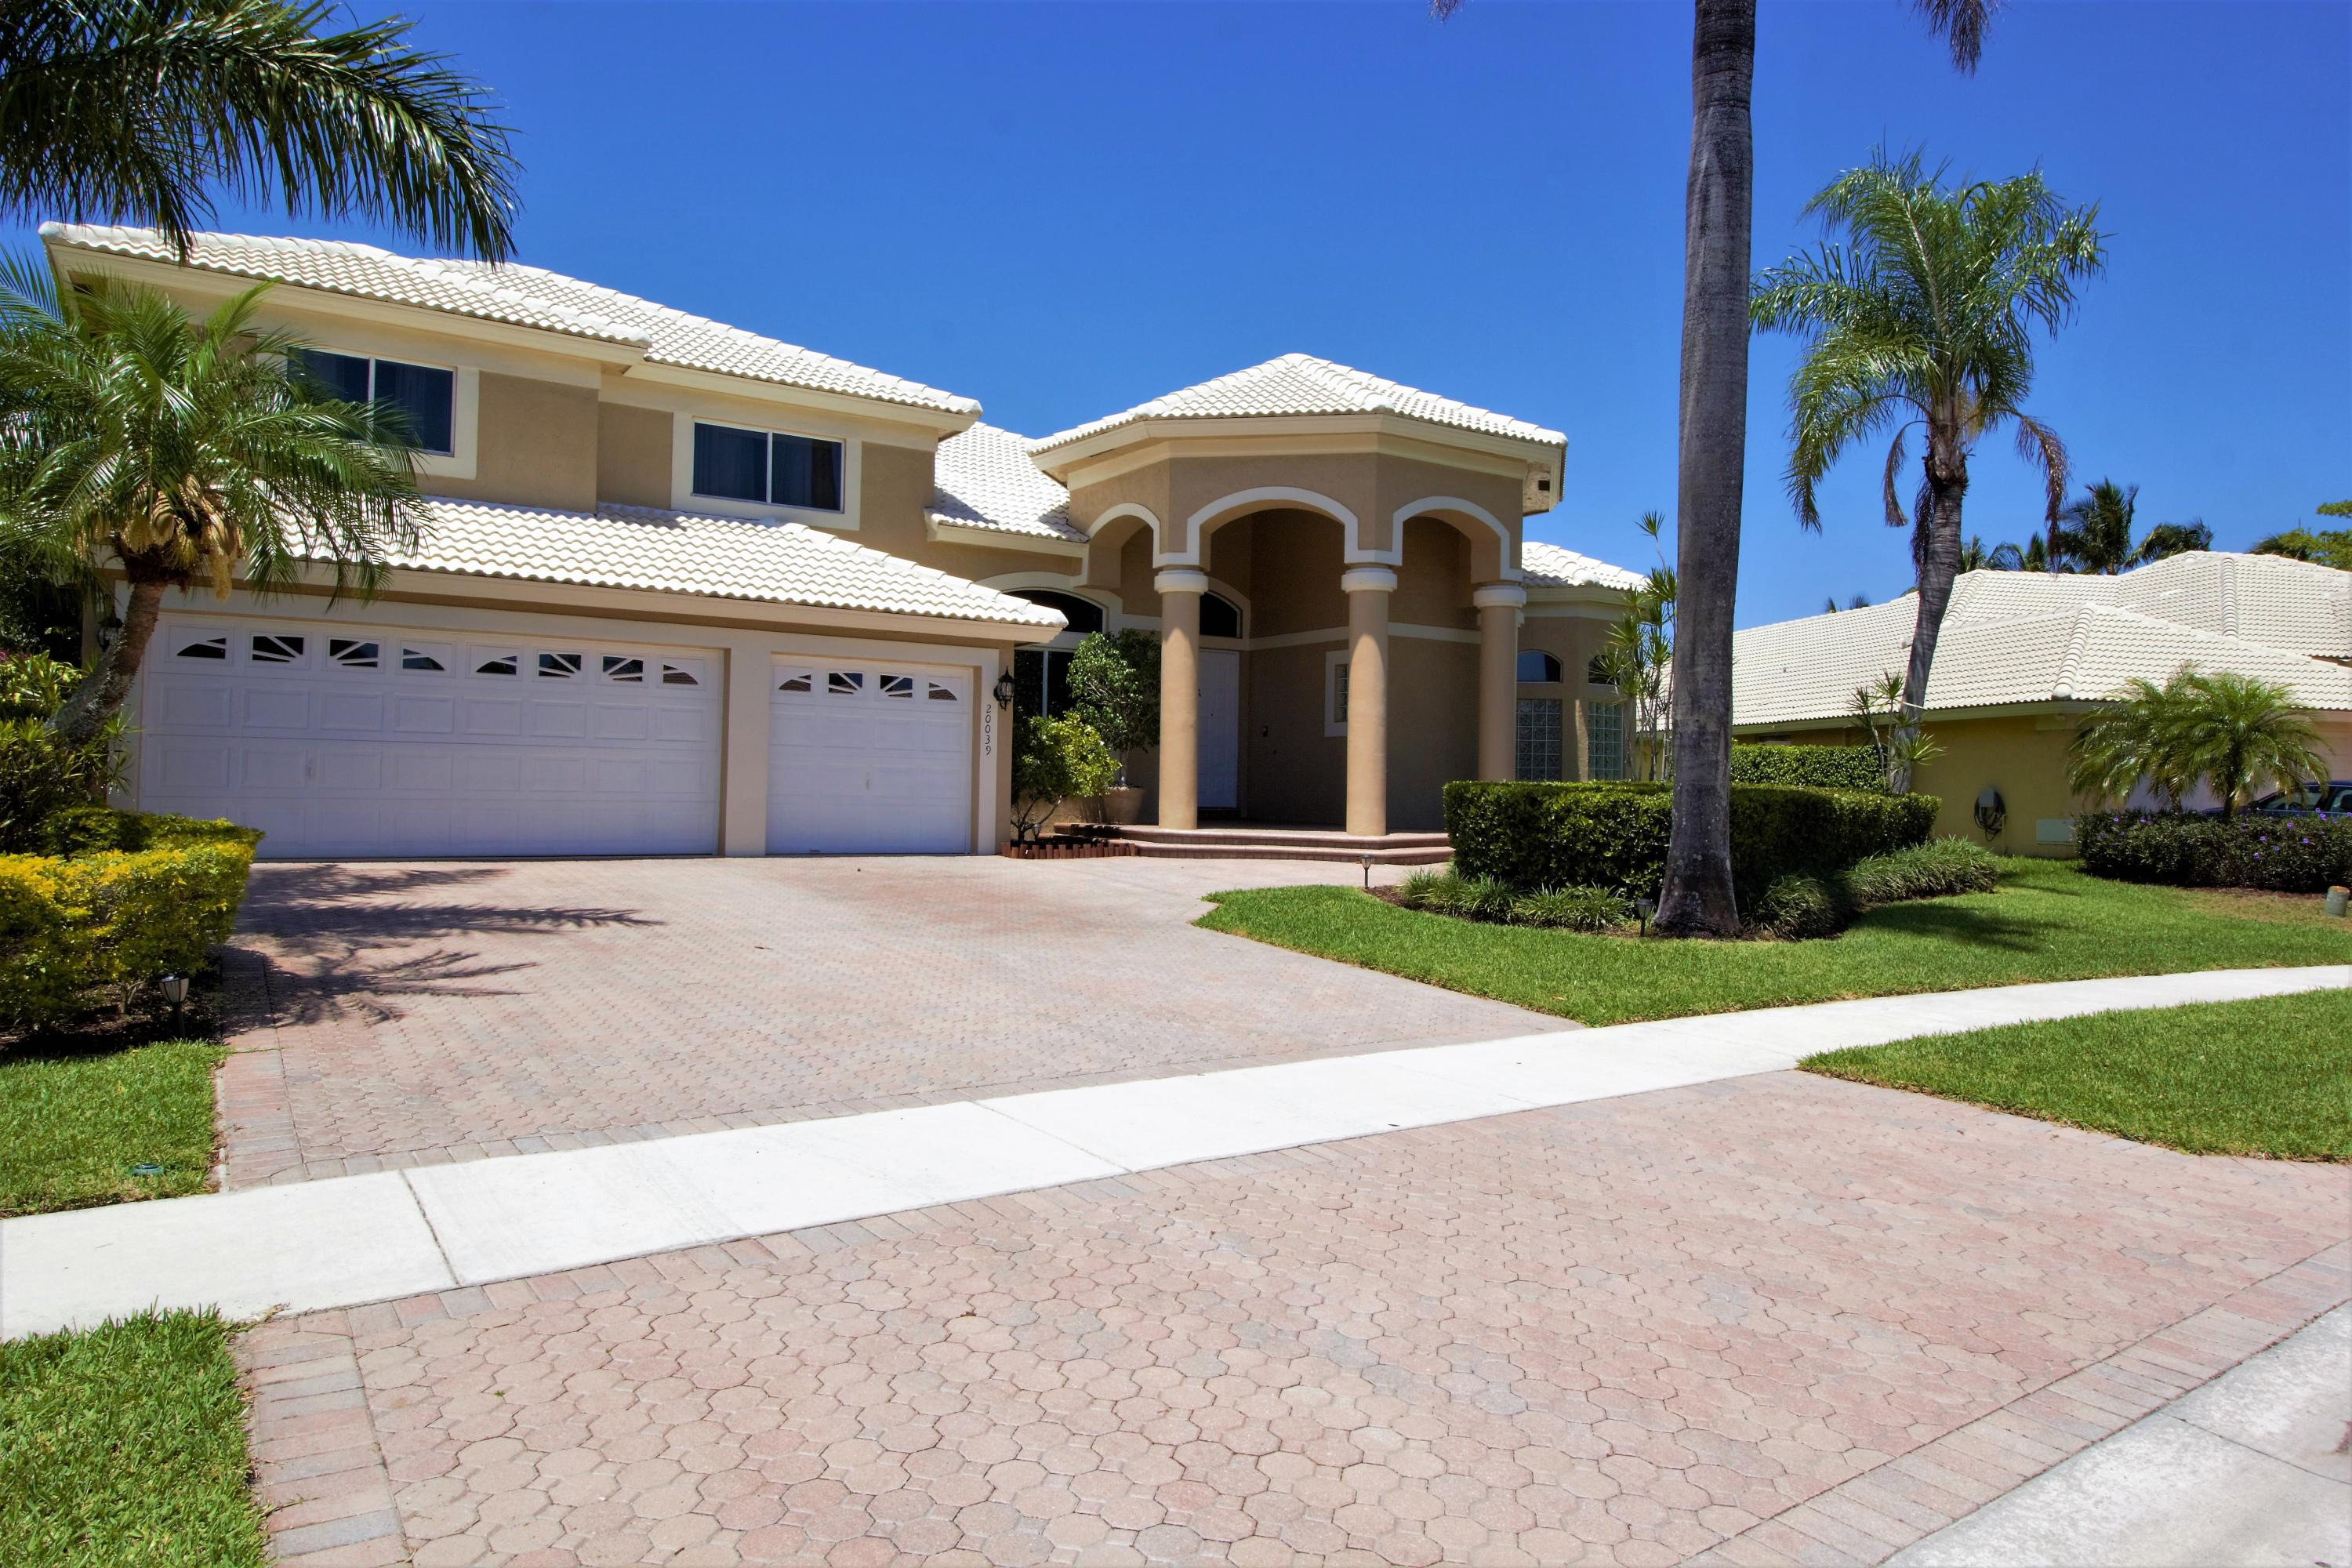 Home for sale in Boca Isles South Boca Raton Florida